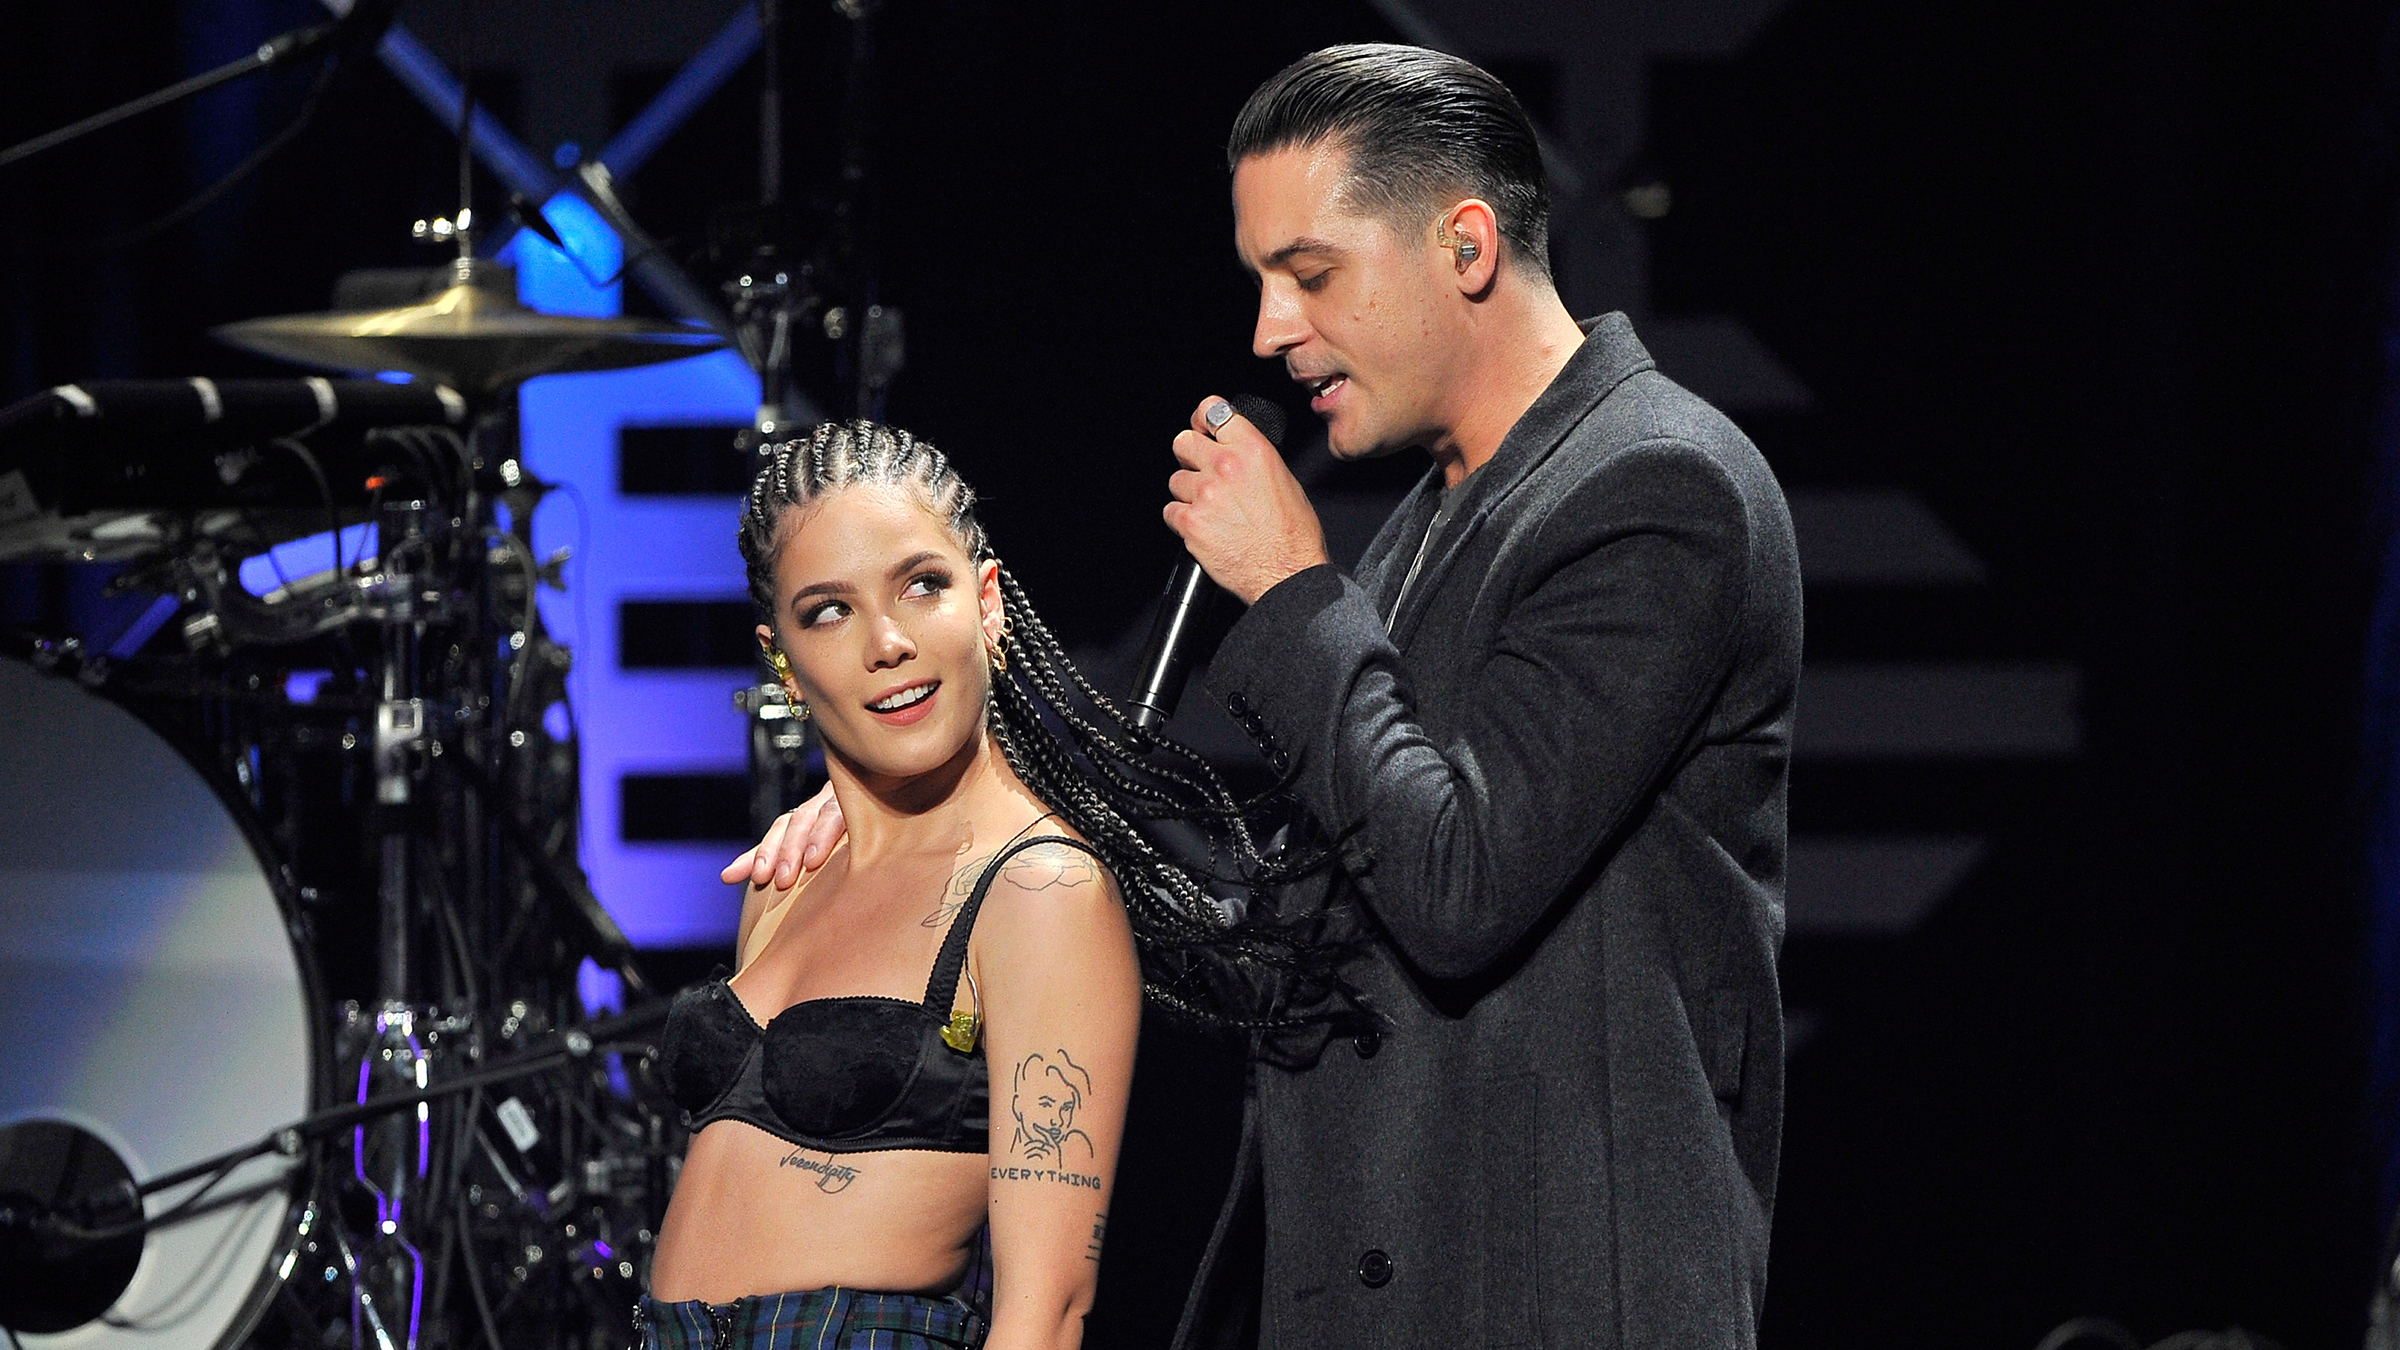 Halsey (L) and G-Eazy perform onstage at WiLD 94.9's FM's Jingle Ball 2017 Presented by Capital One at SAP Center on November 30, 2017 in San Jose, California.